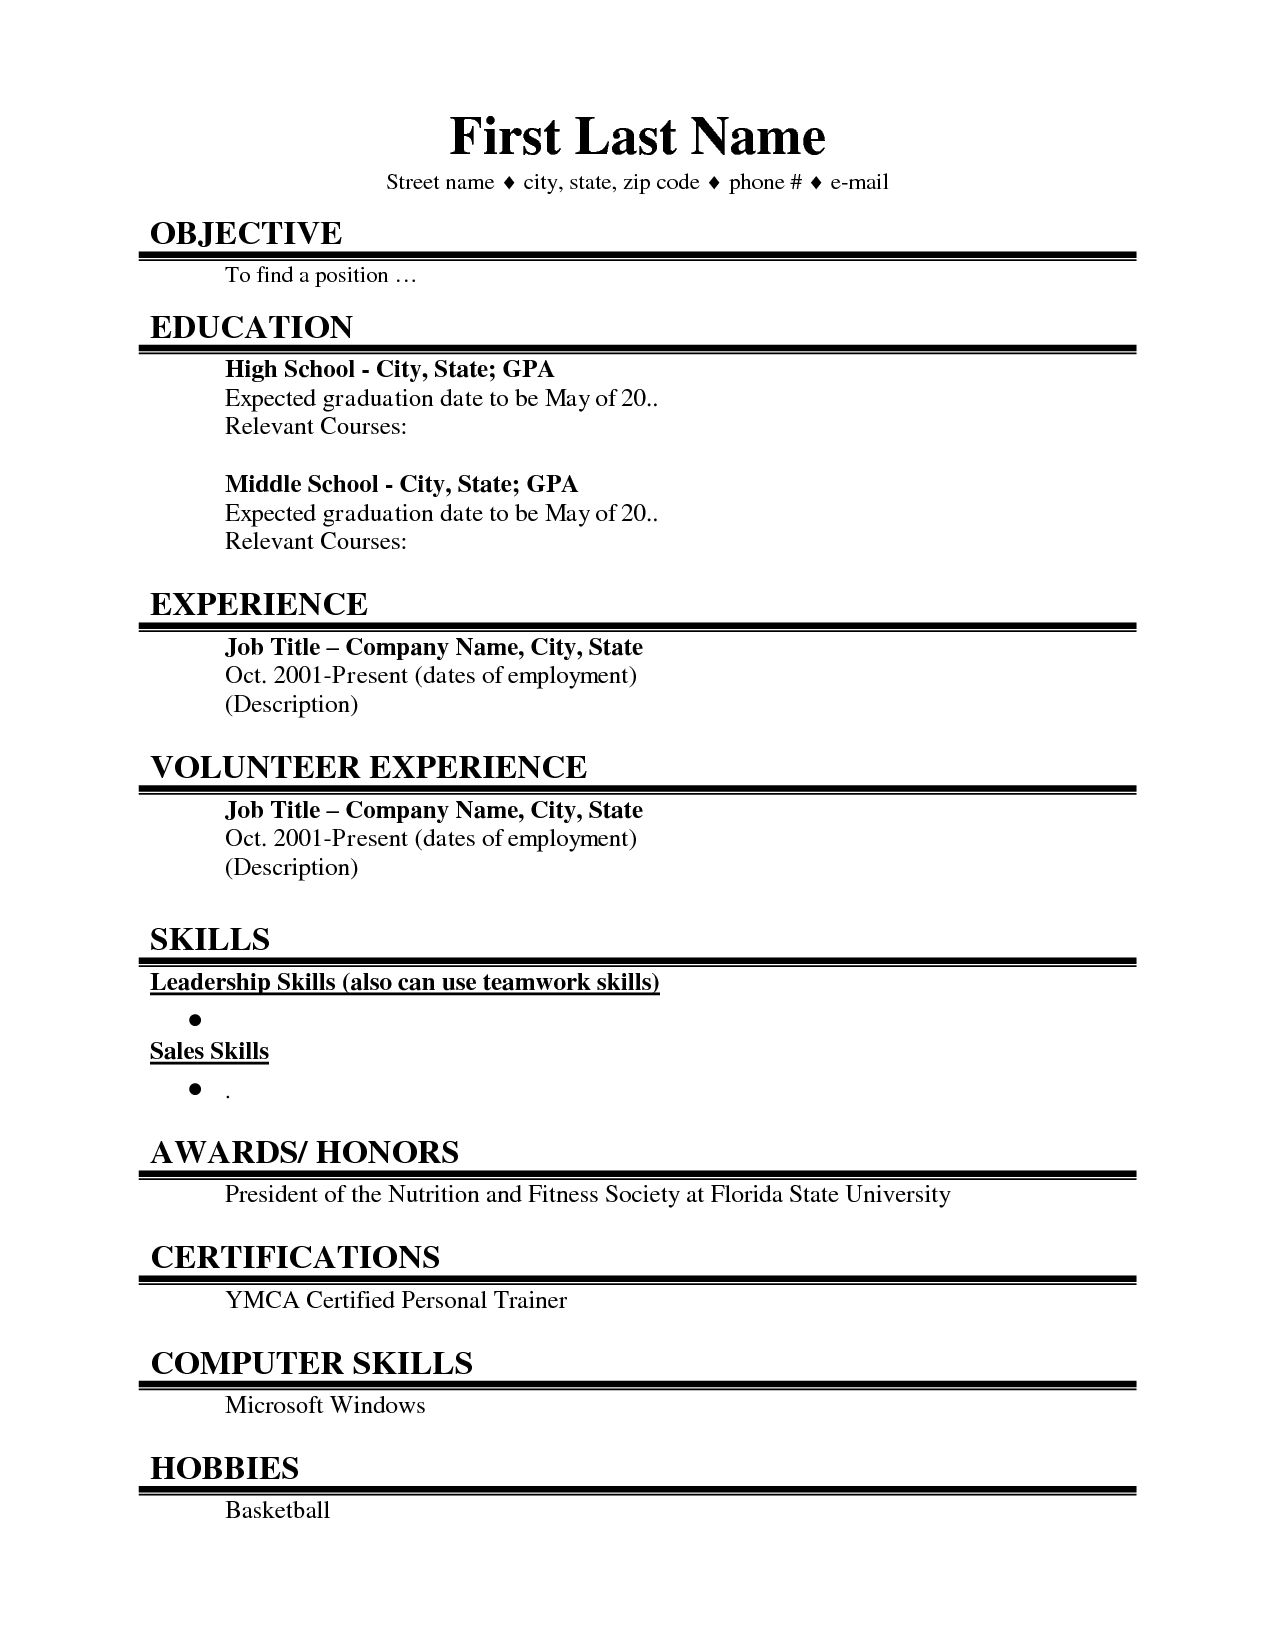 First Job Resume Google Search Accounts Job Resume